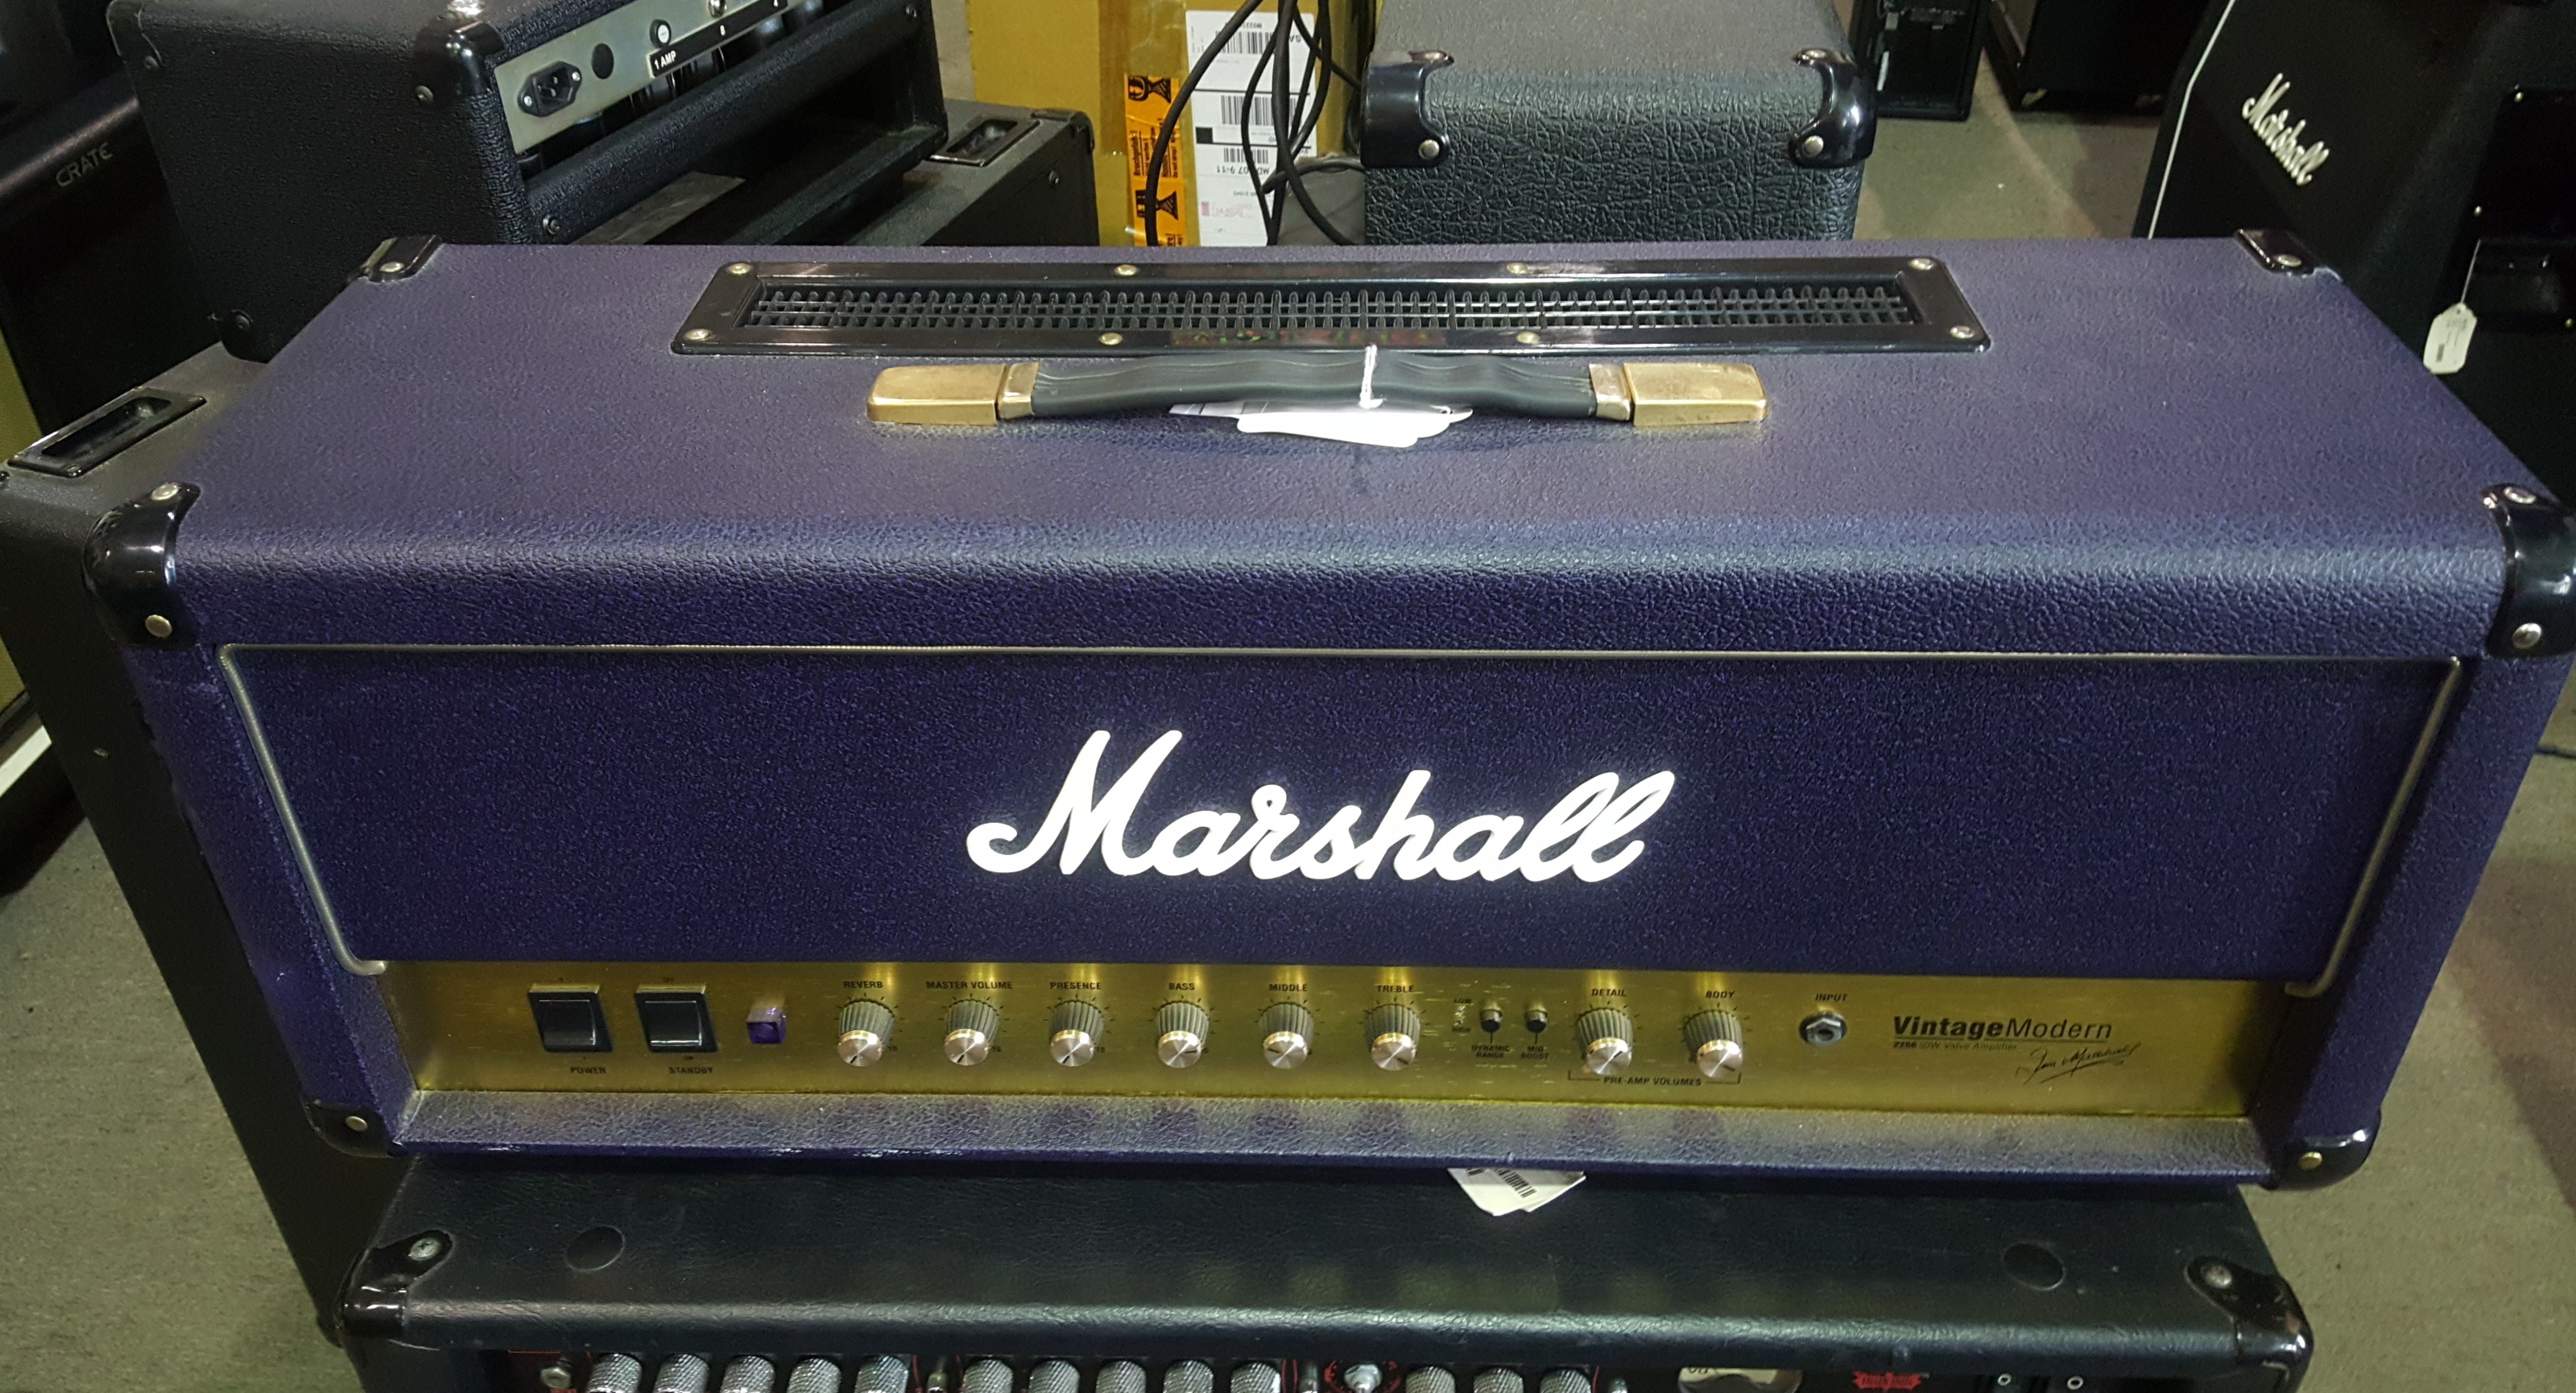 MARSHALL VINTAGE MODERN 2266 50W Tube Amp Head - LOCAL PICKUP ONLY!